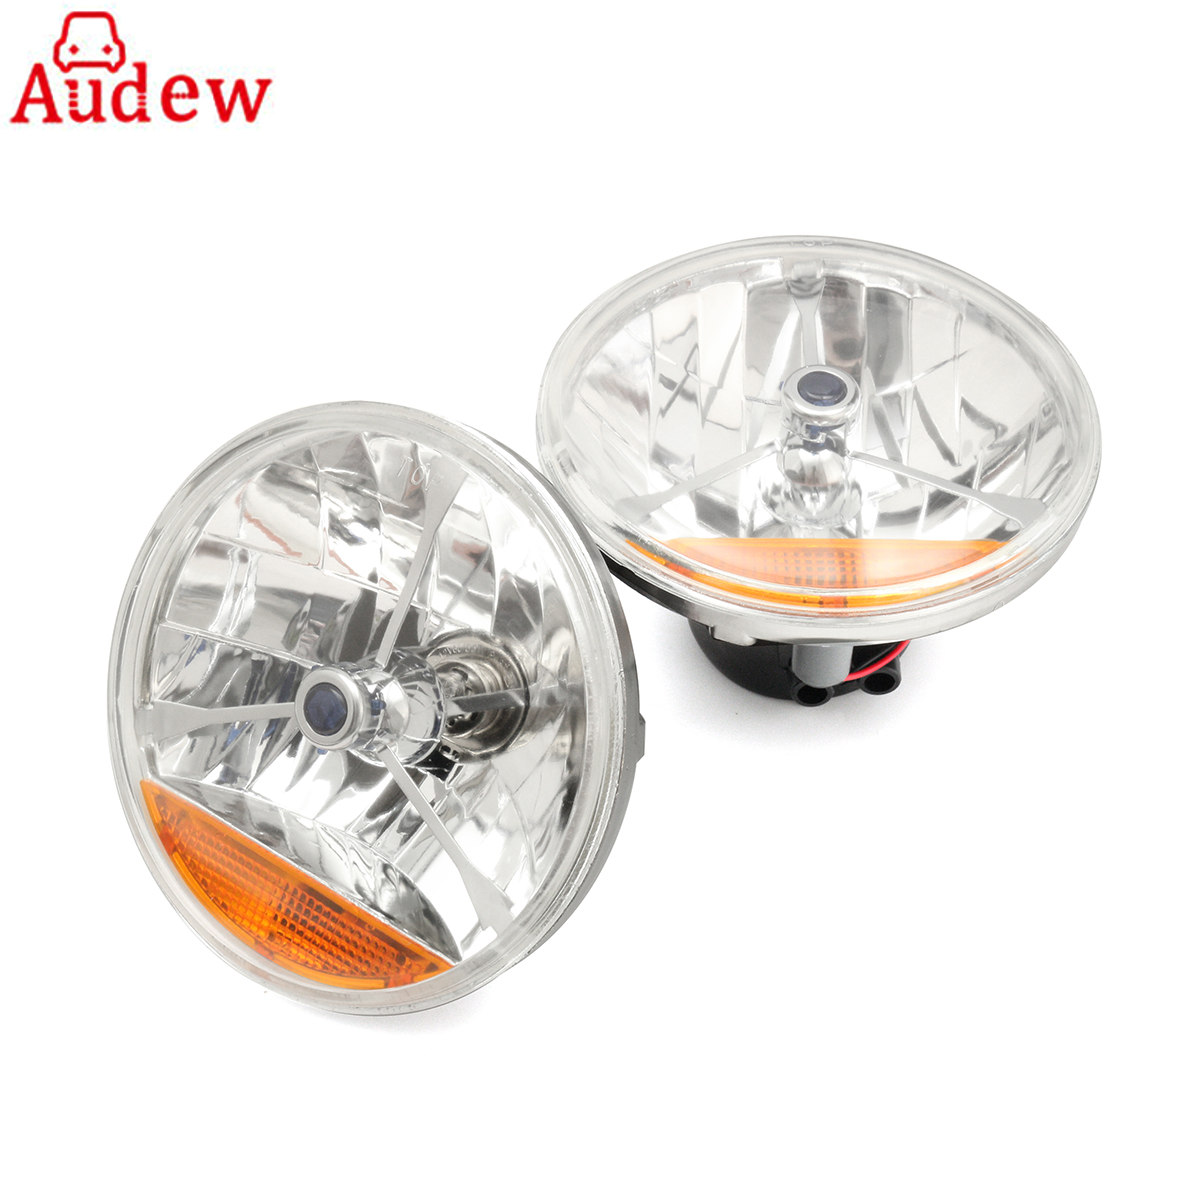 2Pcs 7 Inch H4 LED Car Headlight Fog Light  For Chevy/Ford Motorcycle  Daytime Running Lights Truck Light Led Side Turn Signal 9 cd